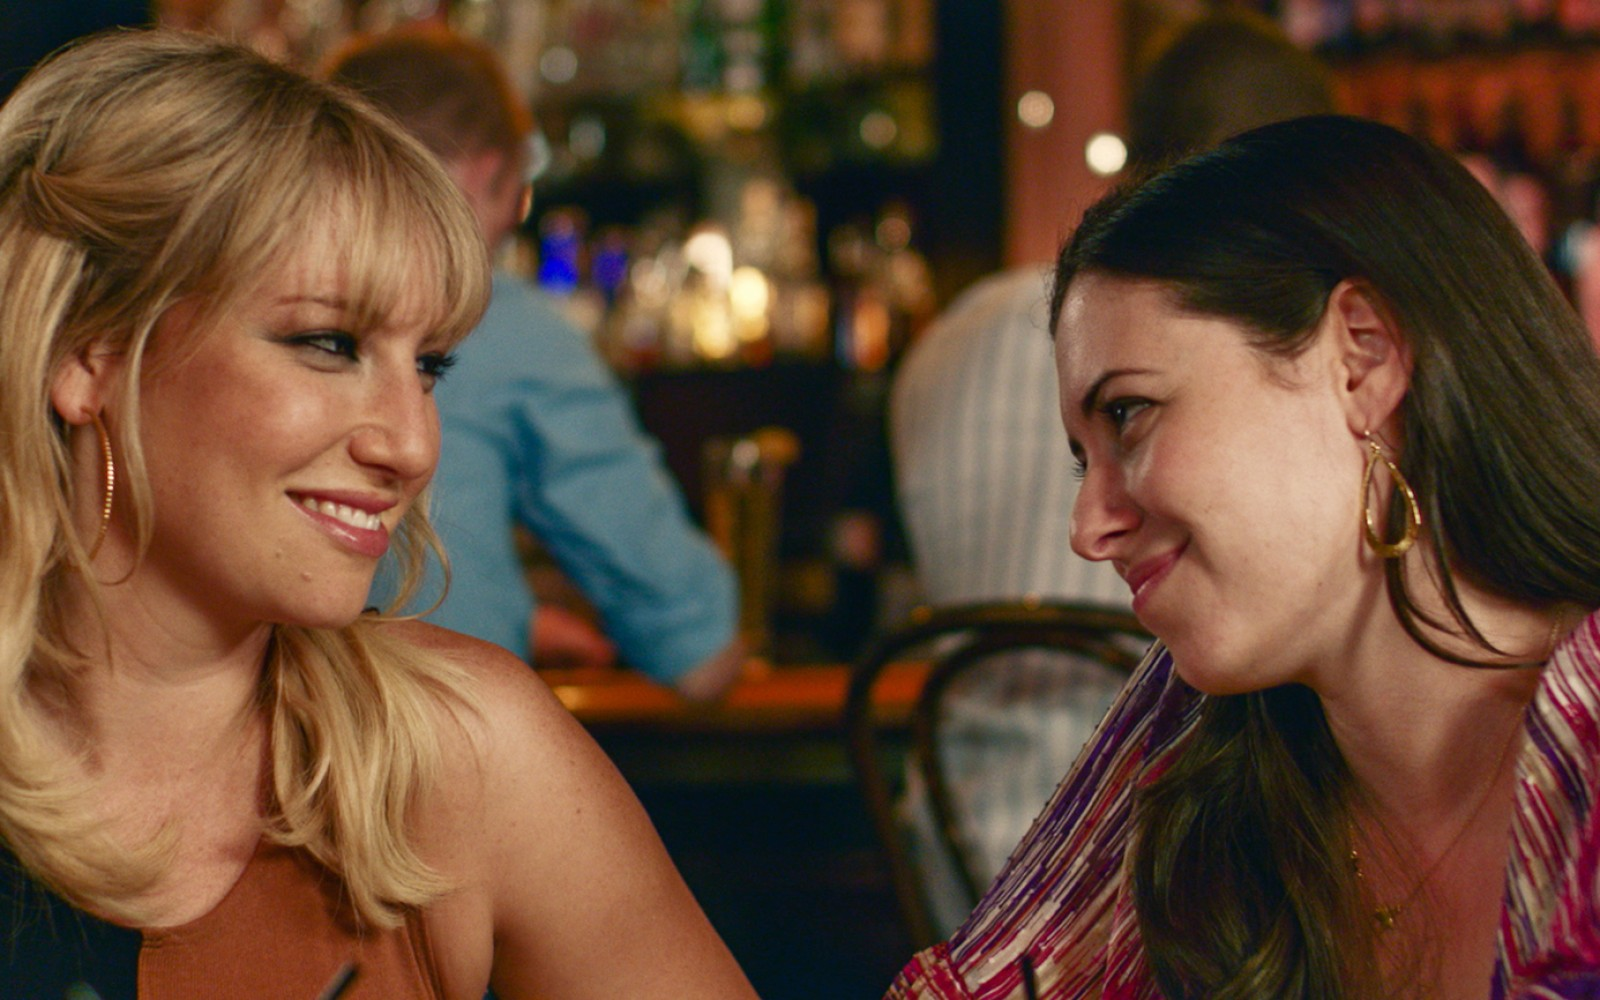 16 Badass Quotes From 'For A Good Time Call' That Prove Why Female Friendships Are The Goddamn Best